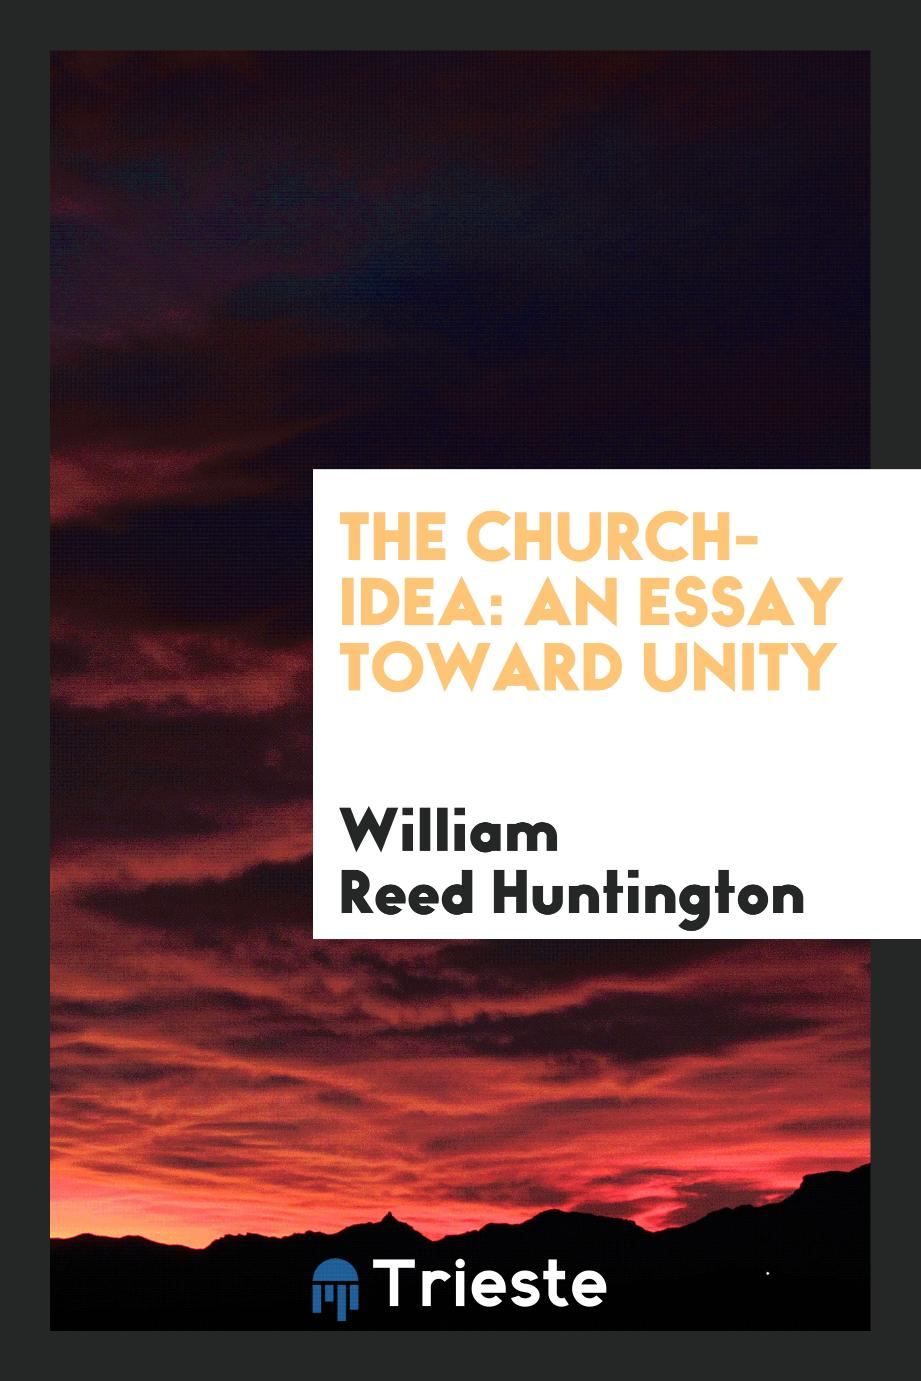 The church-idea: an essay toward unity